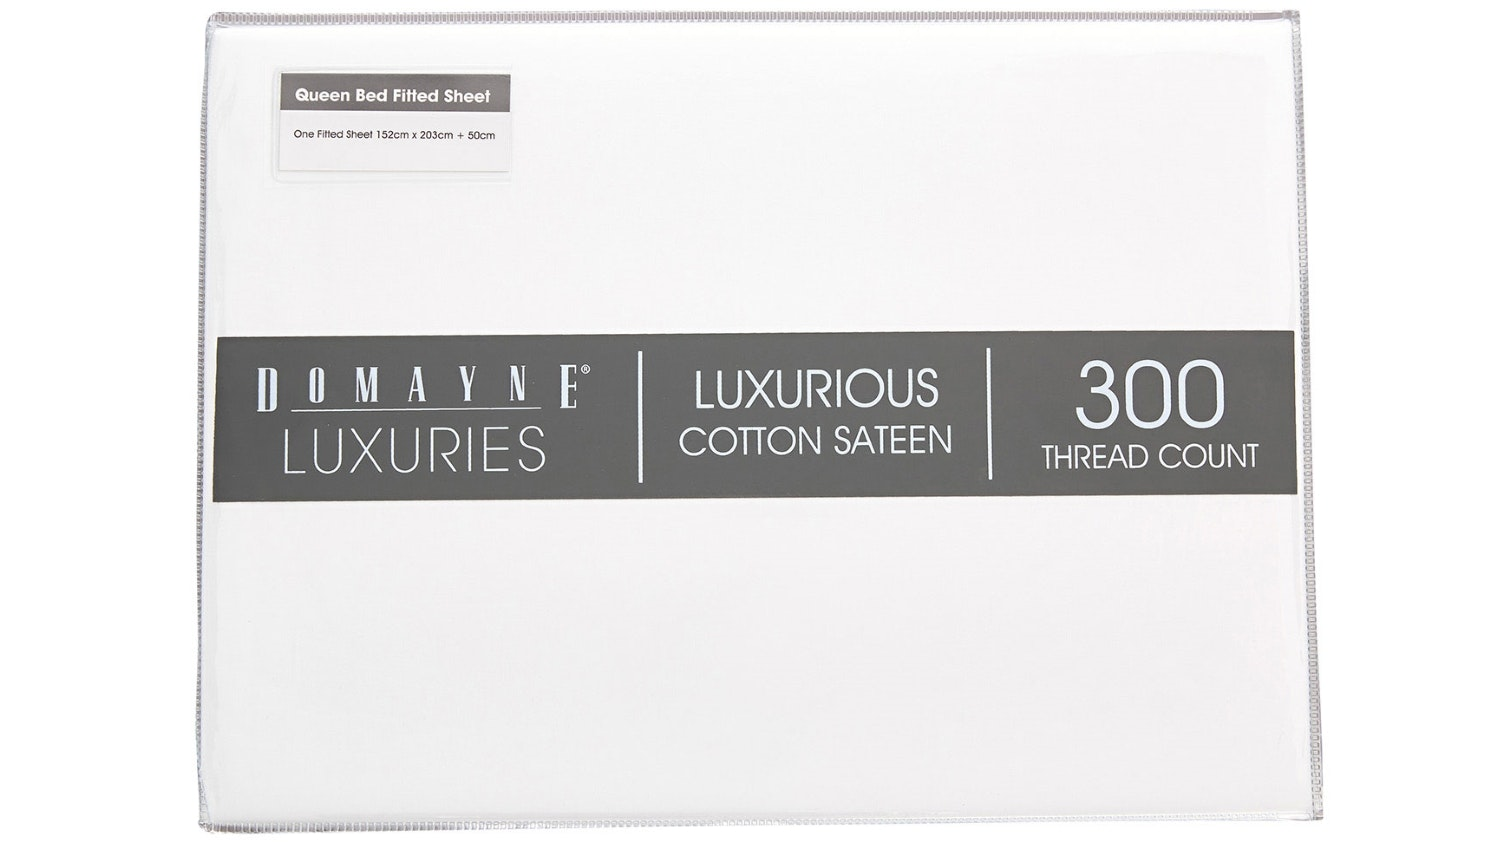 Domayne Luxuries 300TC Fitted Sheet - White